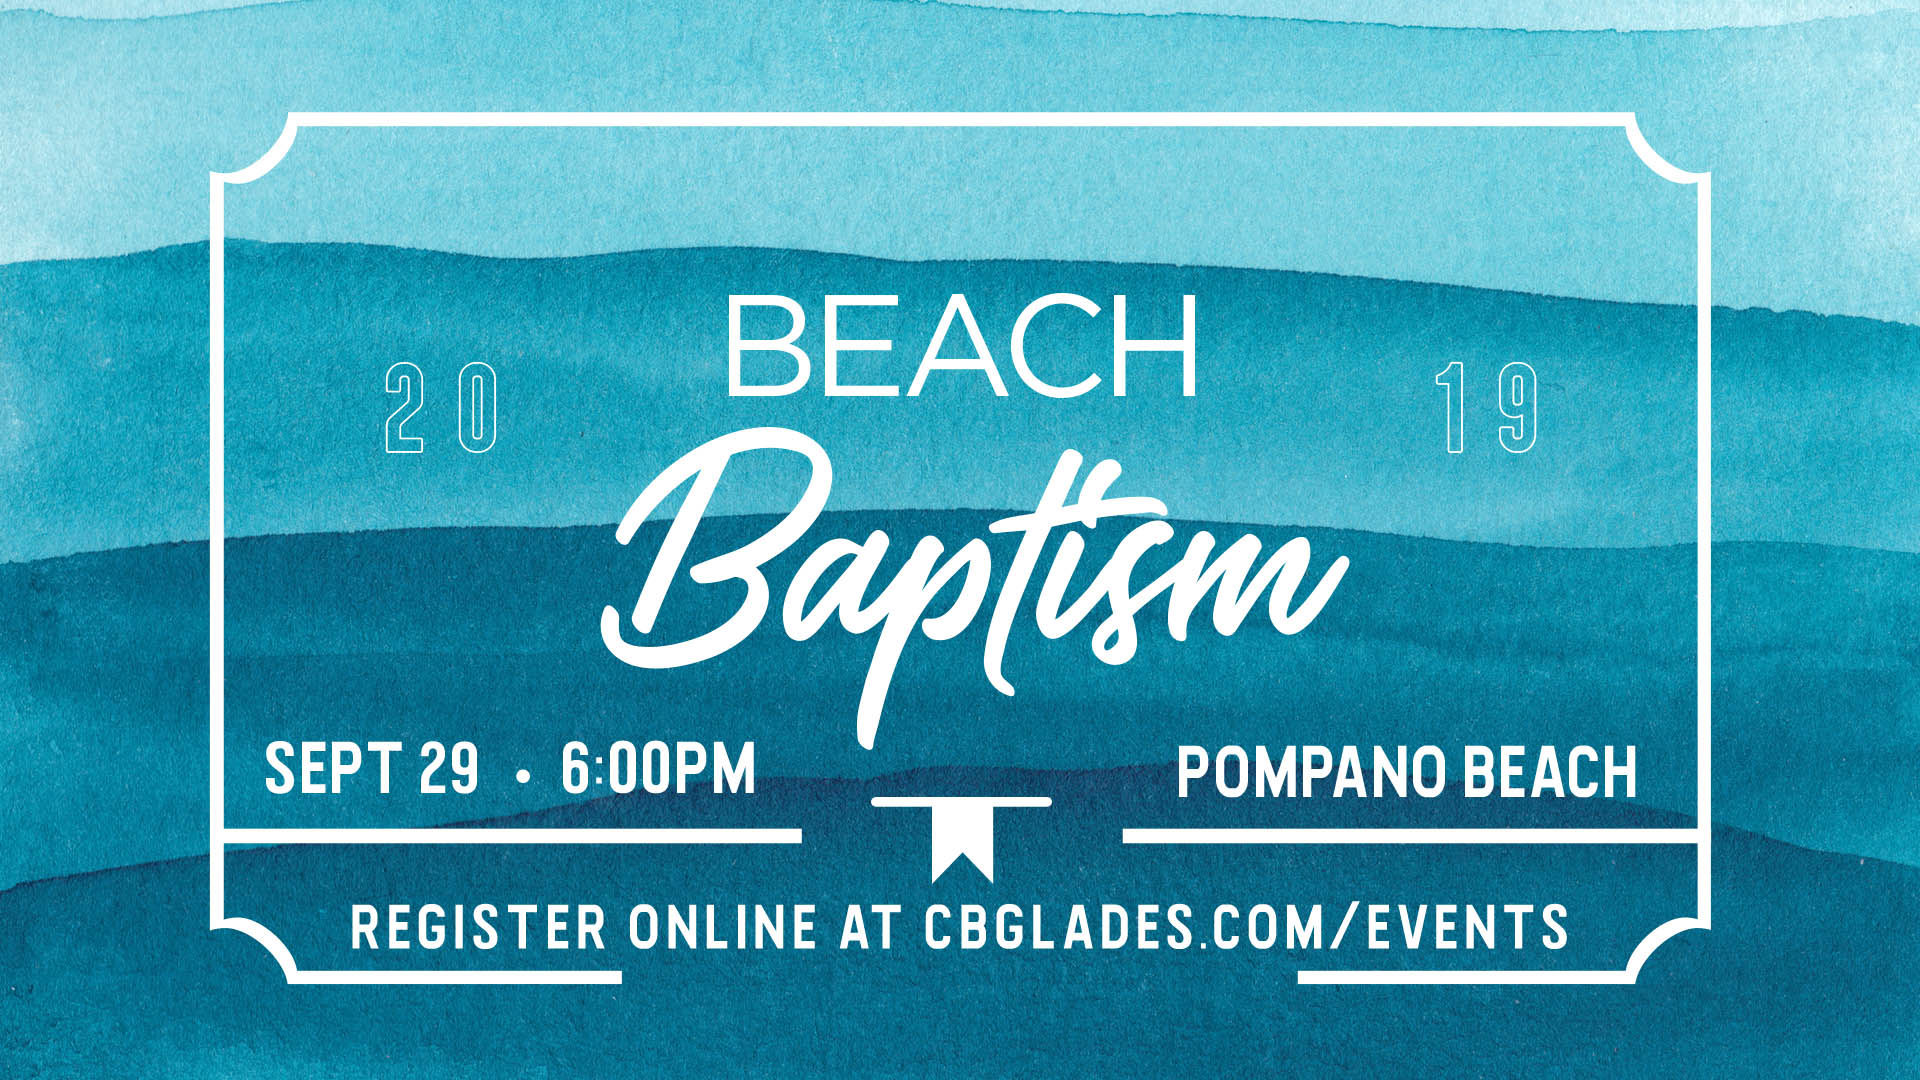 v2_beachbaptism-fall2019.jpg